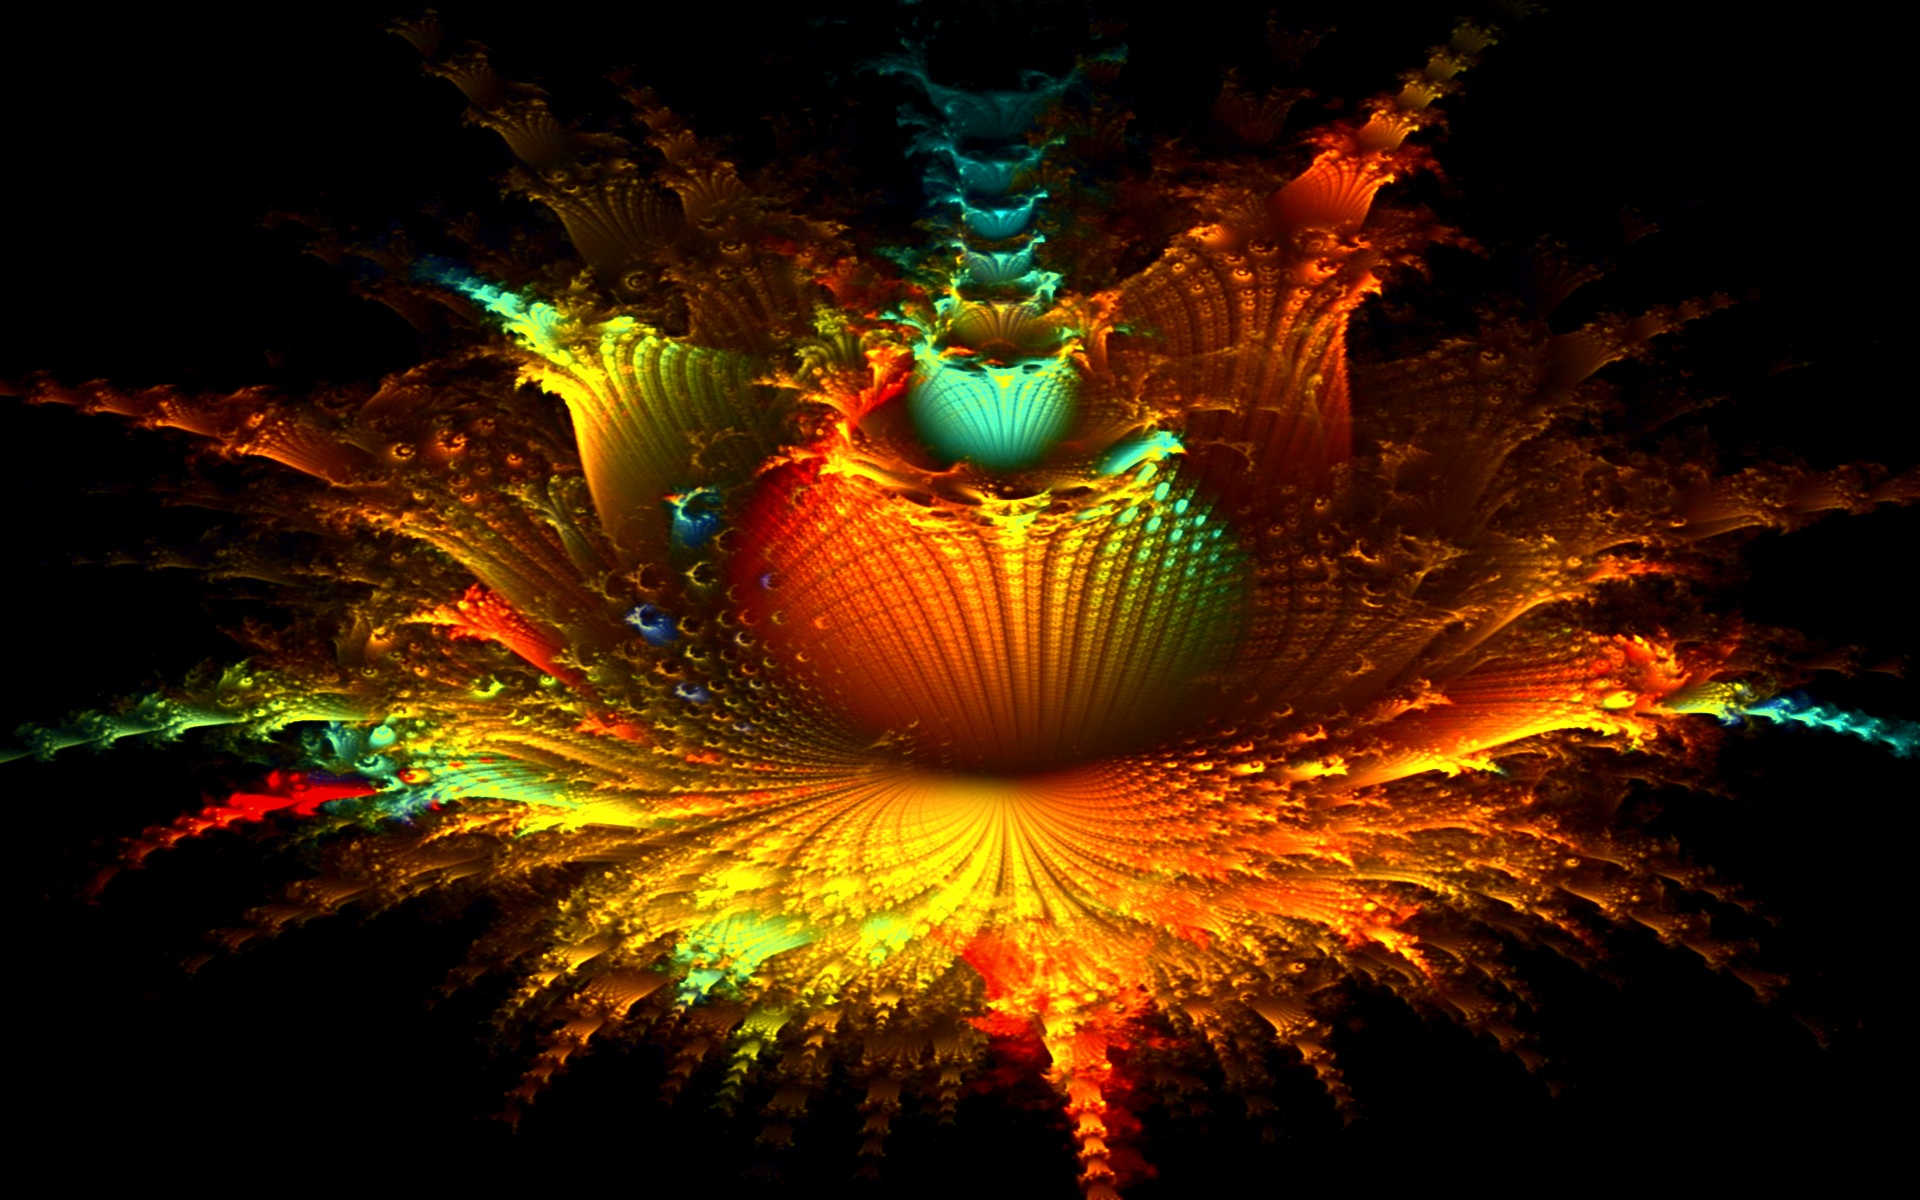 Fractal floral explosion wallpapers fractal floral - Large screen wallpapers free ...